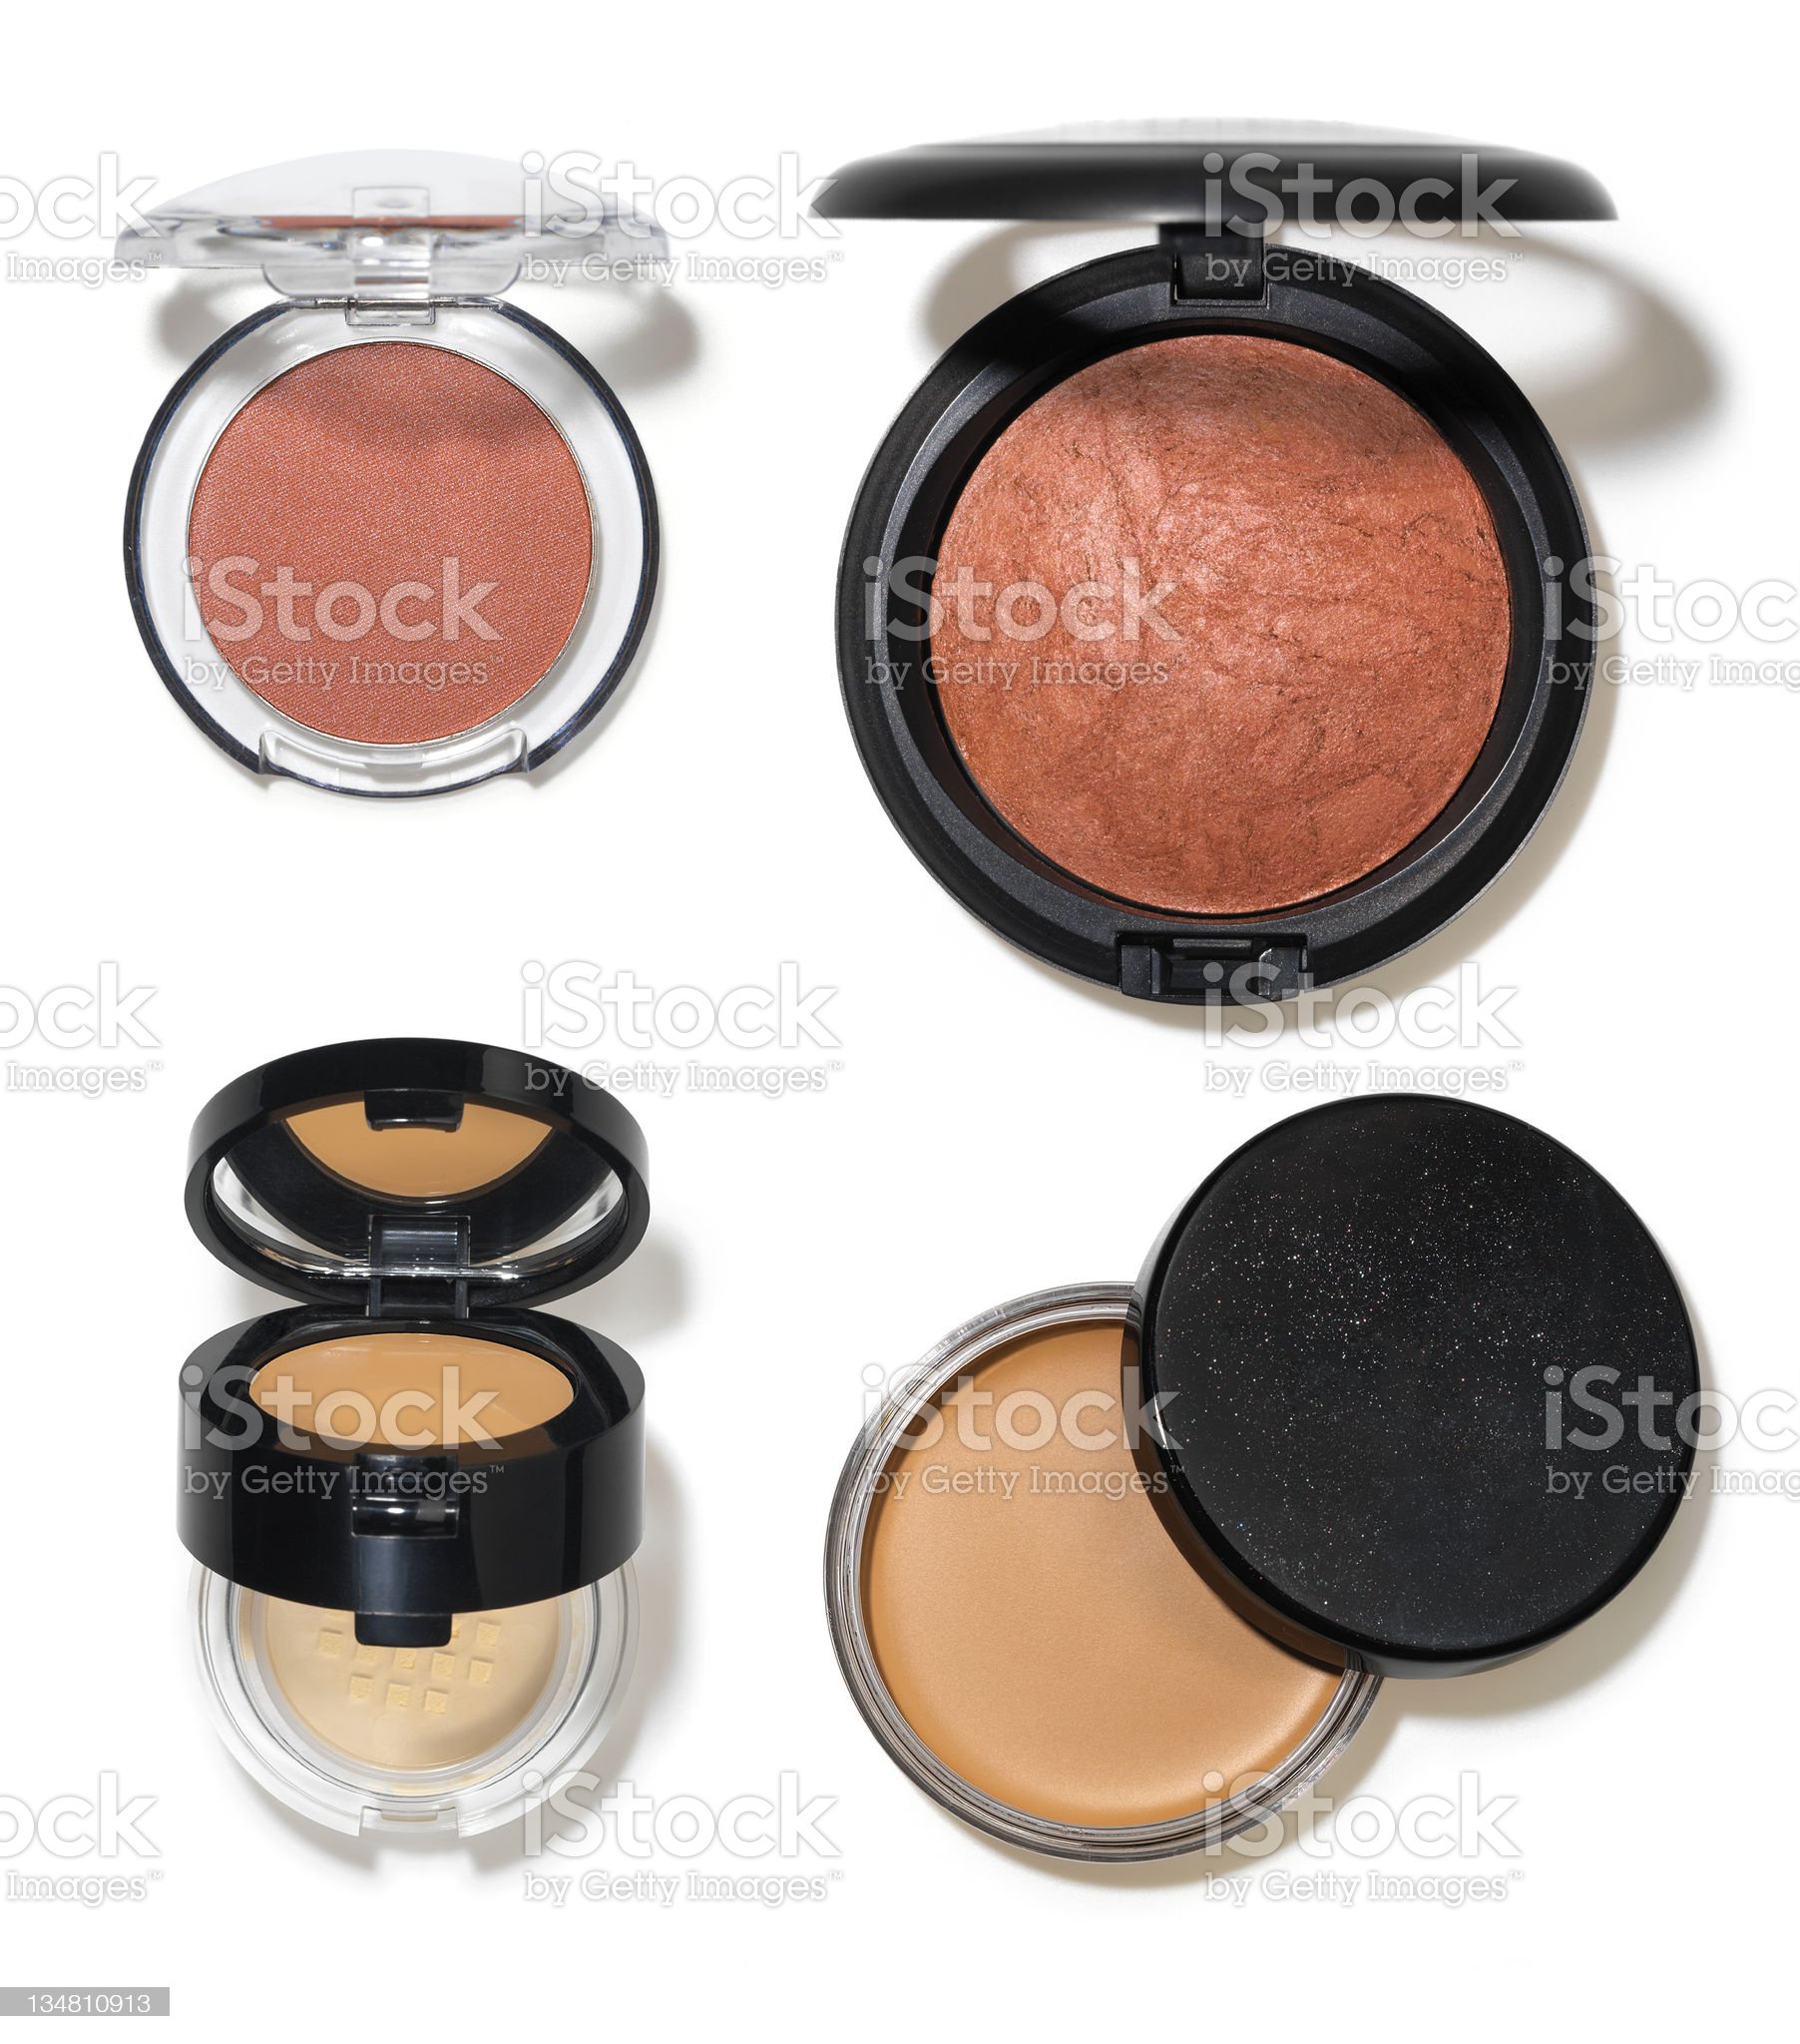 Makeup accessories 2 royalty-free stock photo